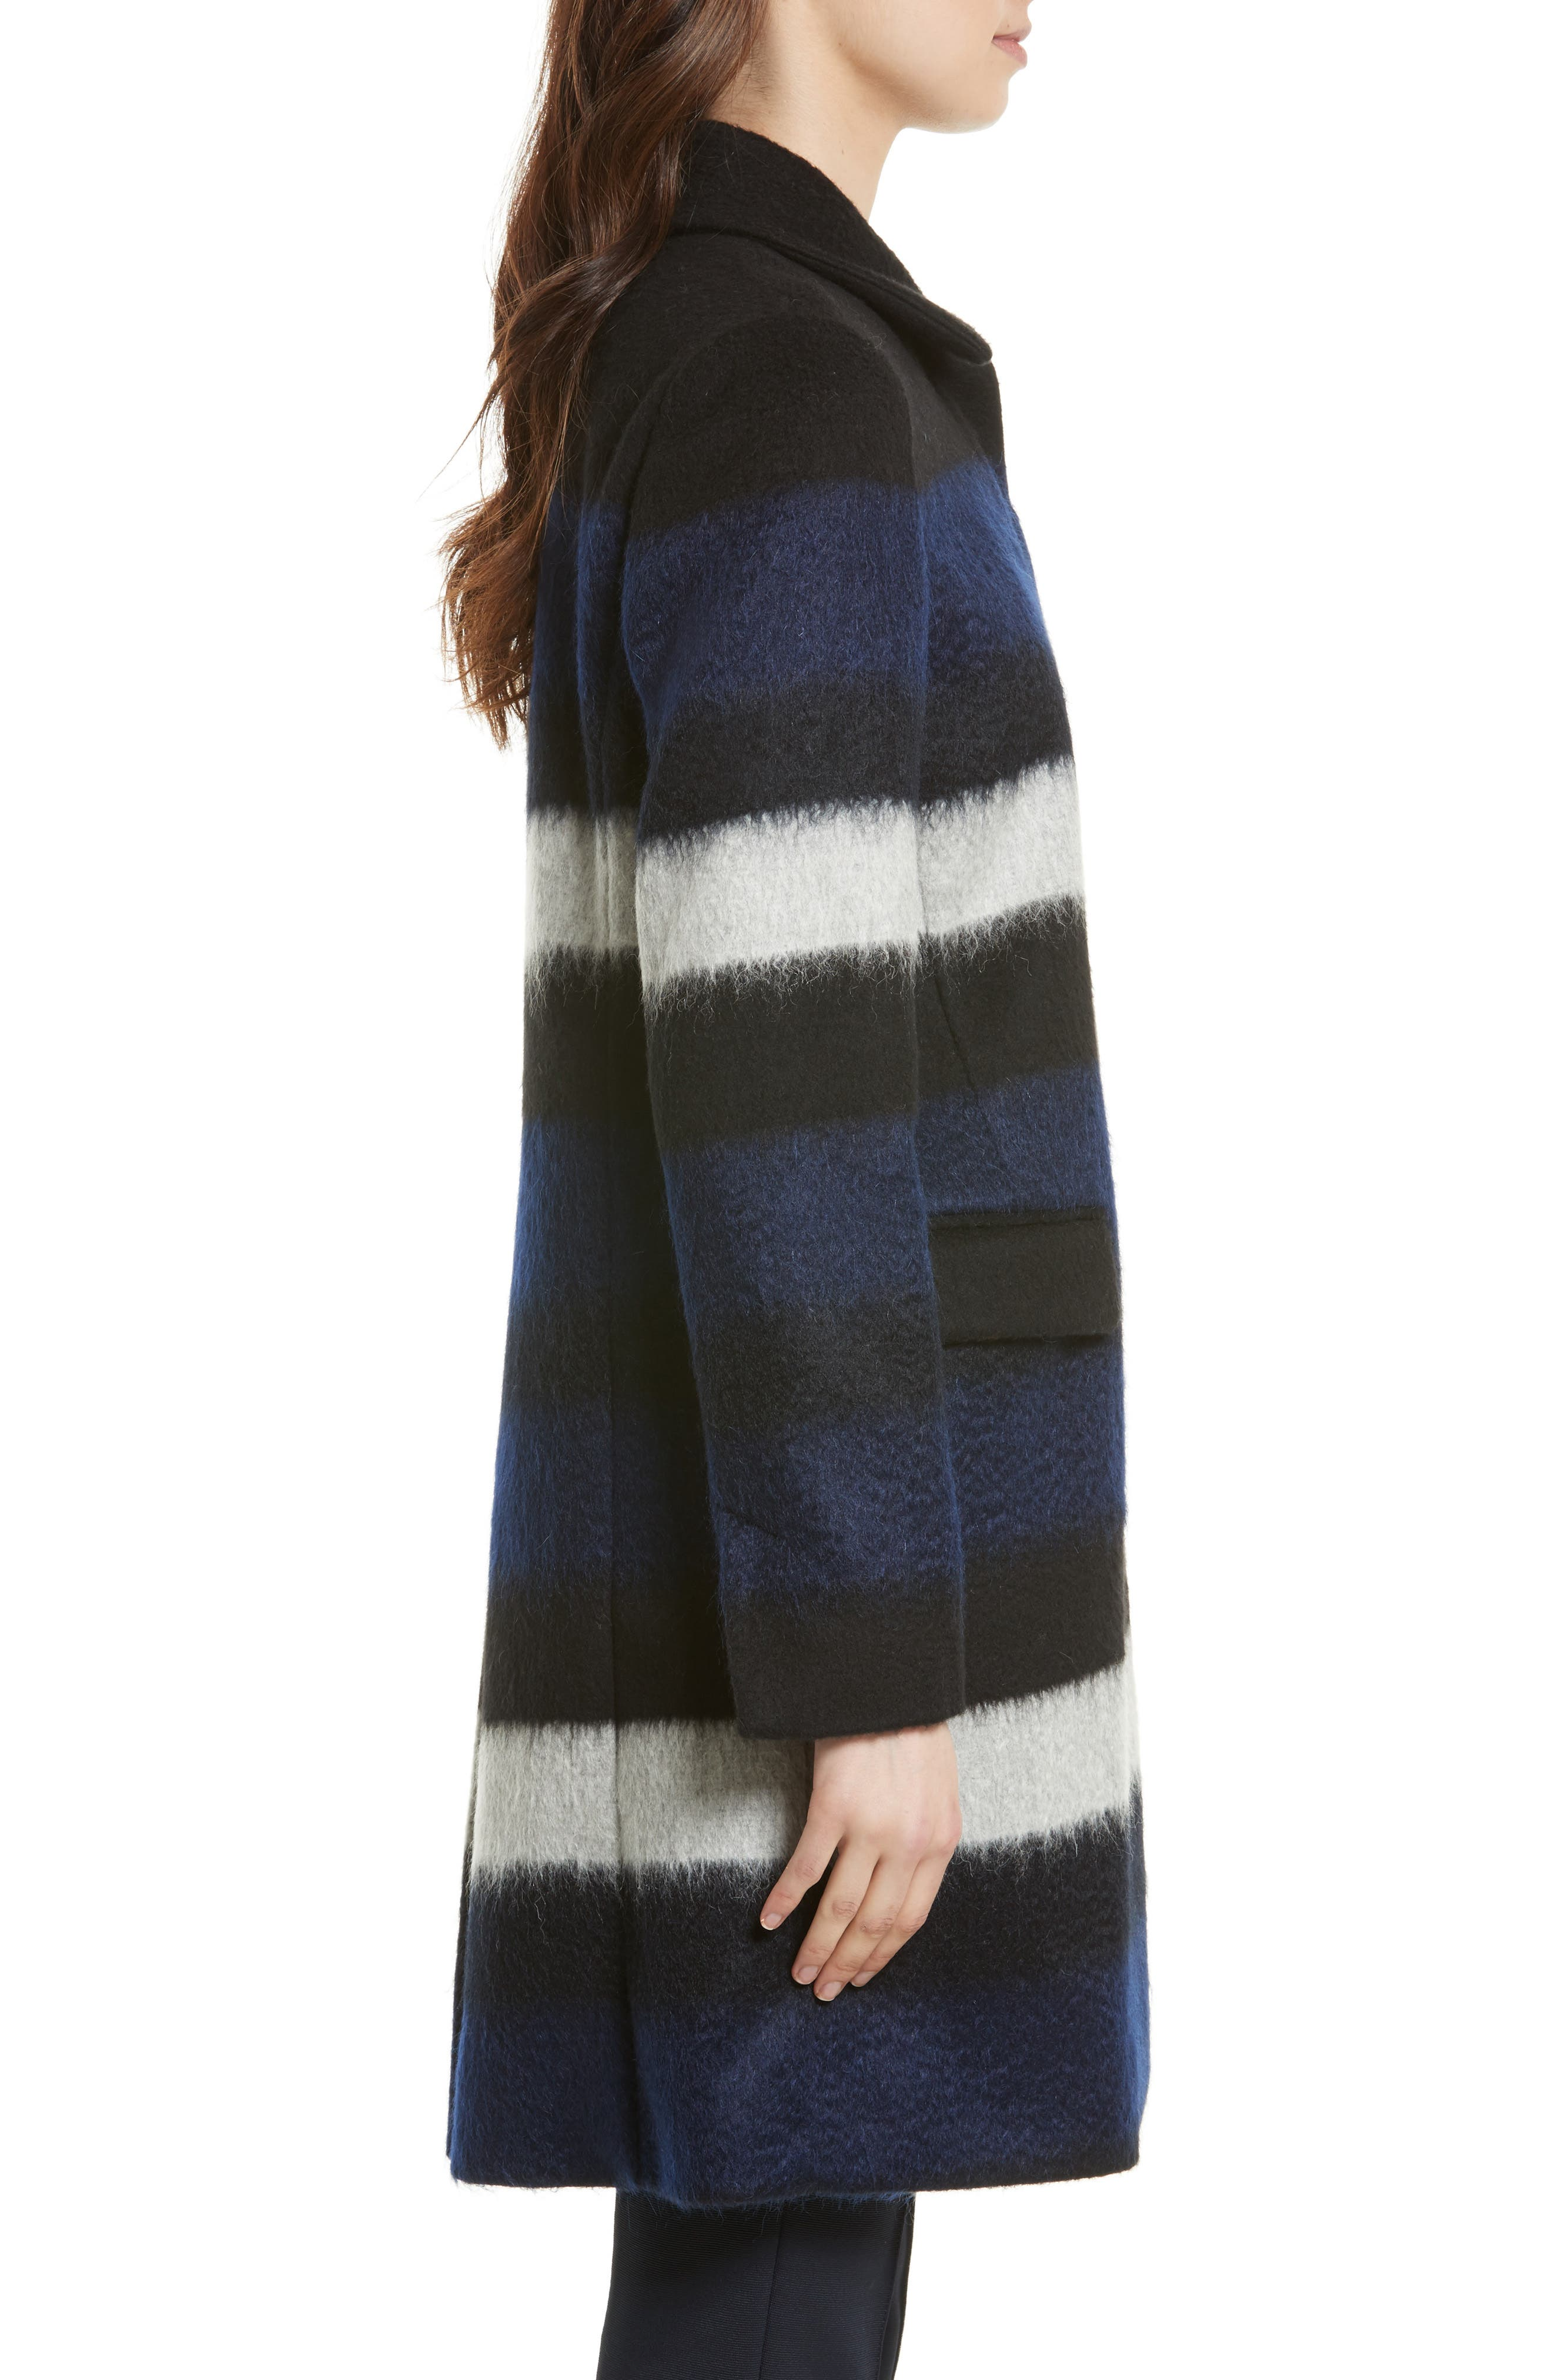 Stripe Wool Blend Coat,                             Alternate thumbnail 3, color,                             Black Multi Stripe